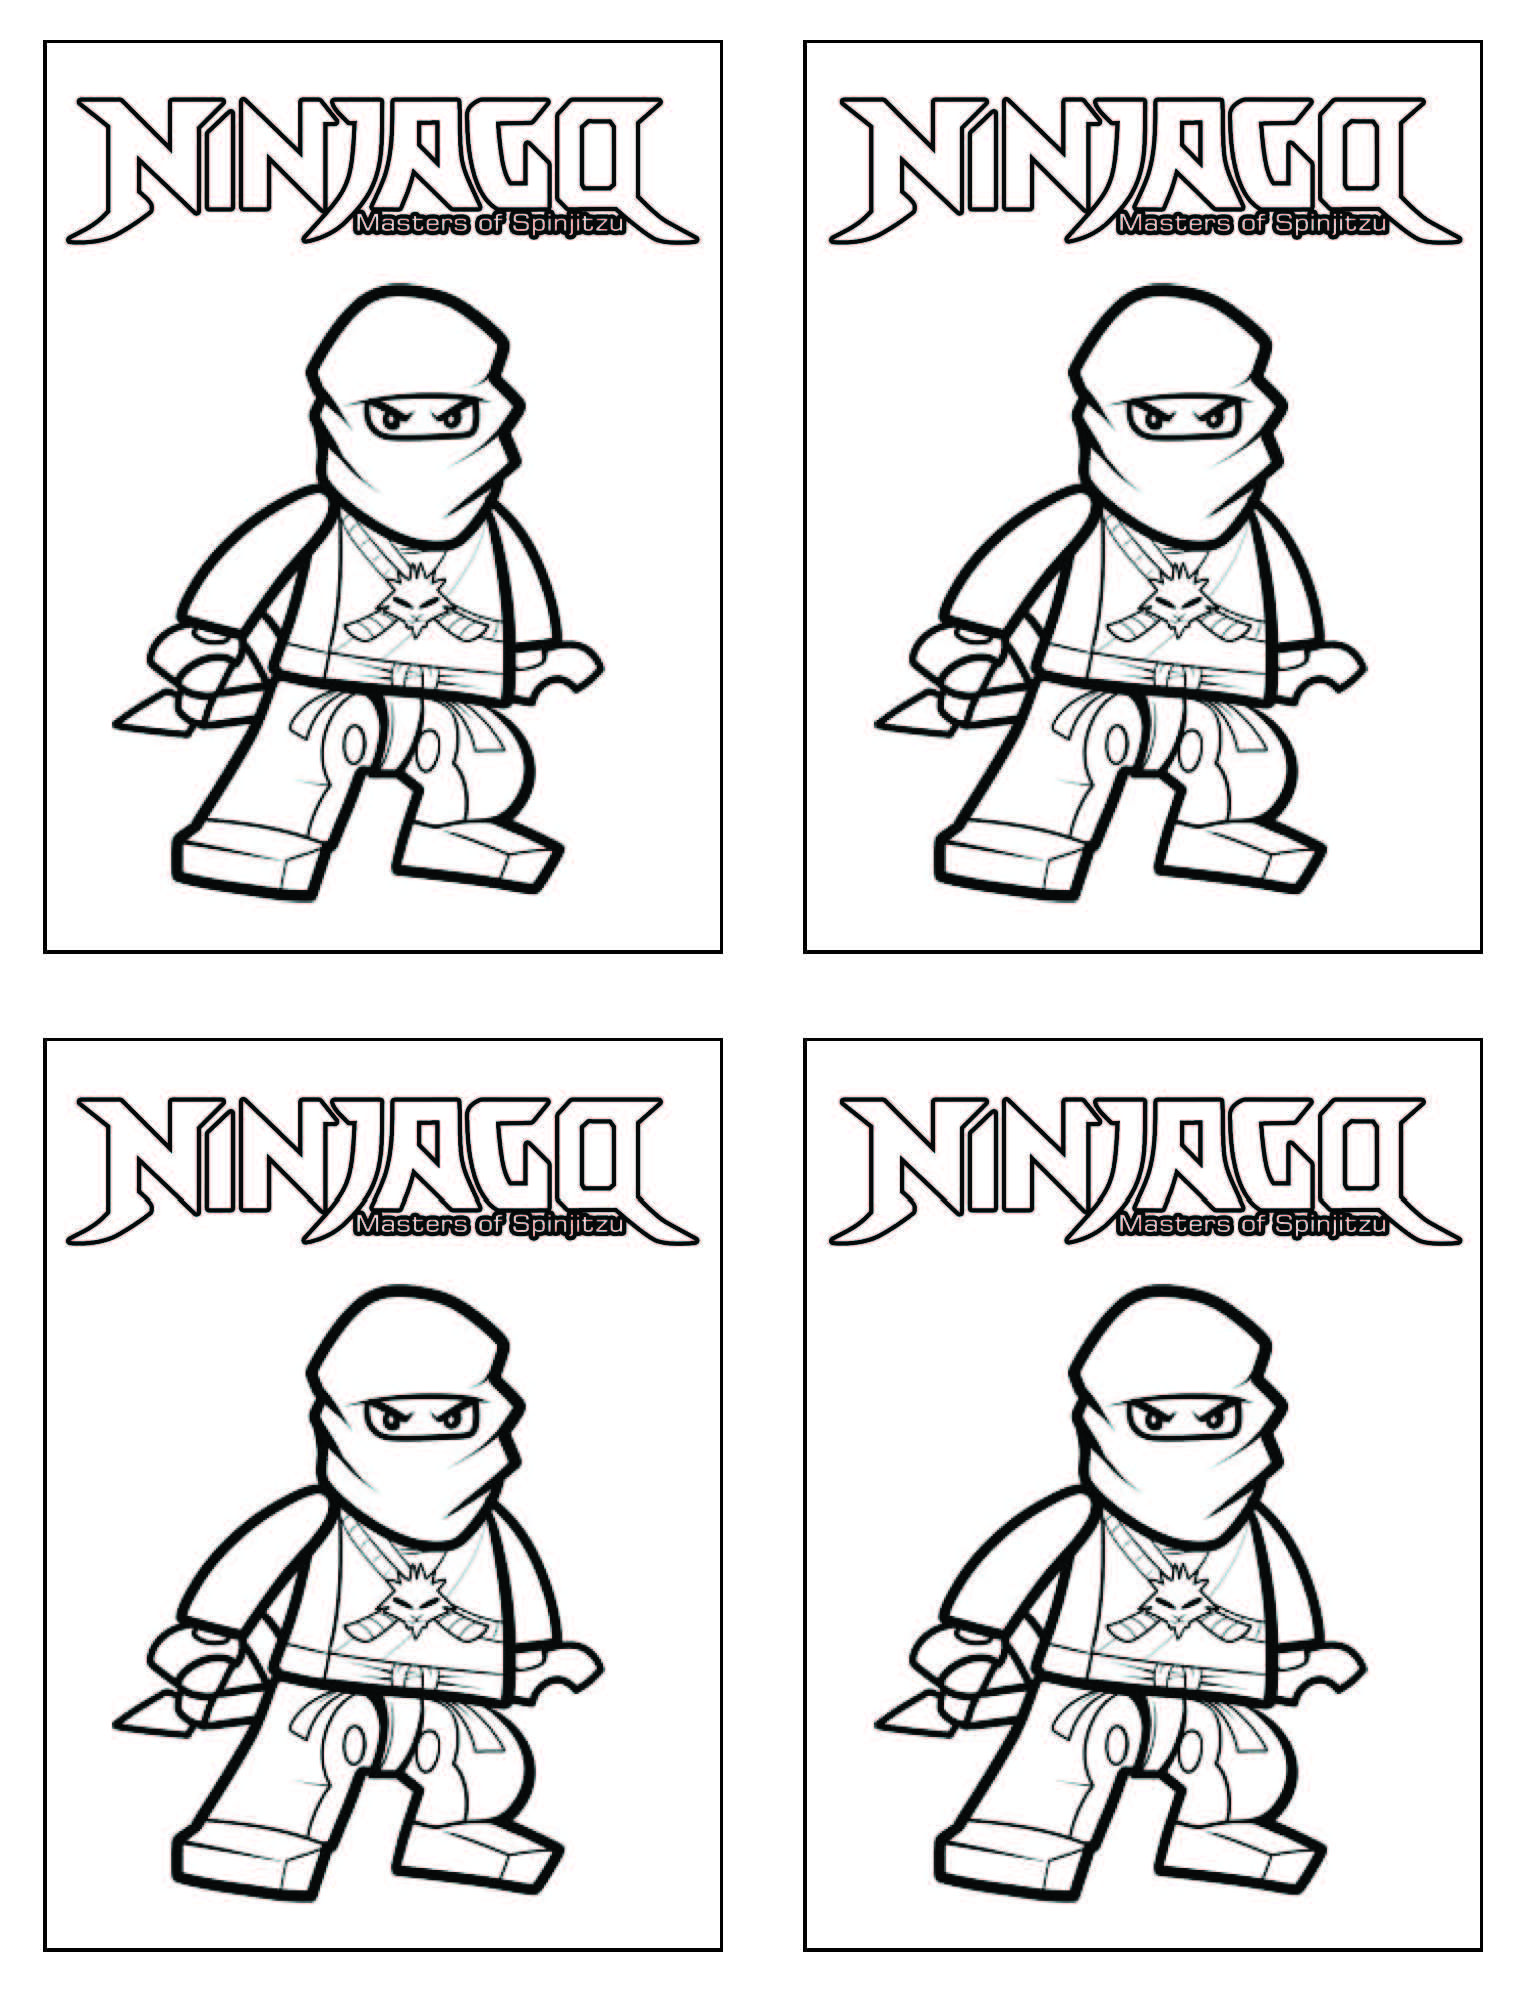 ninjago coloring page small size for a goodie bag